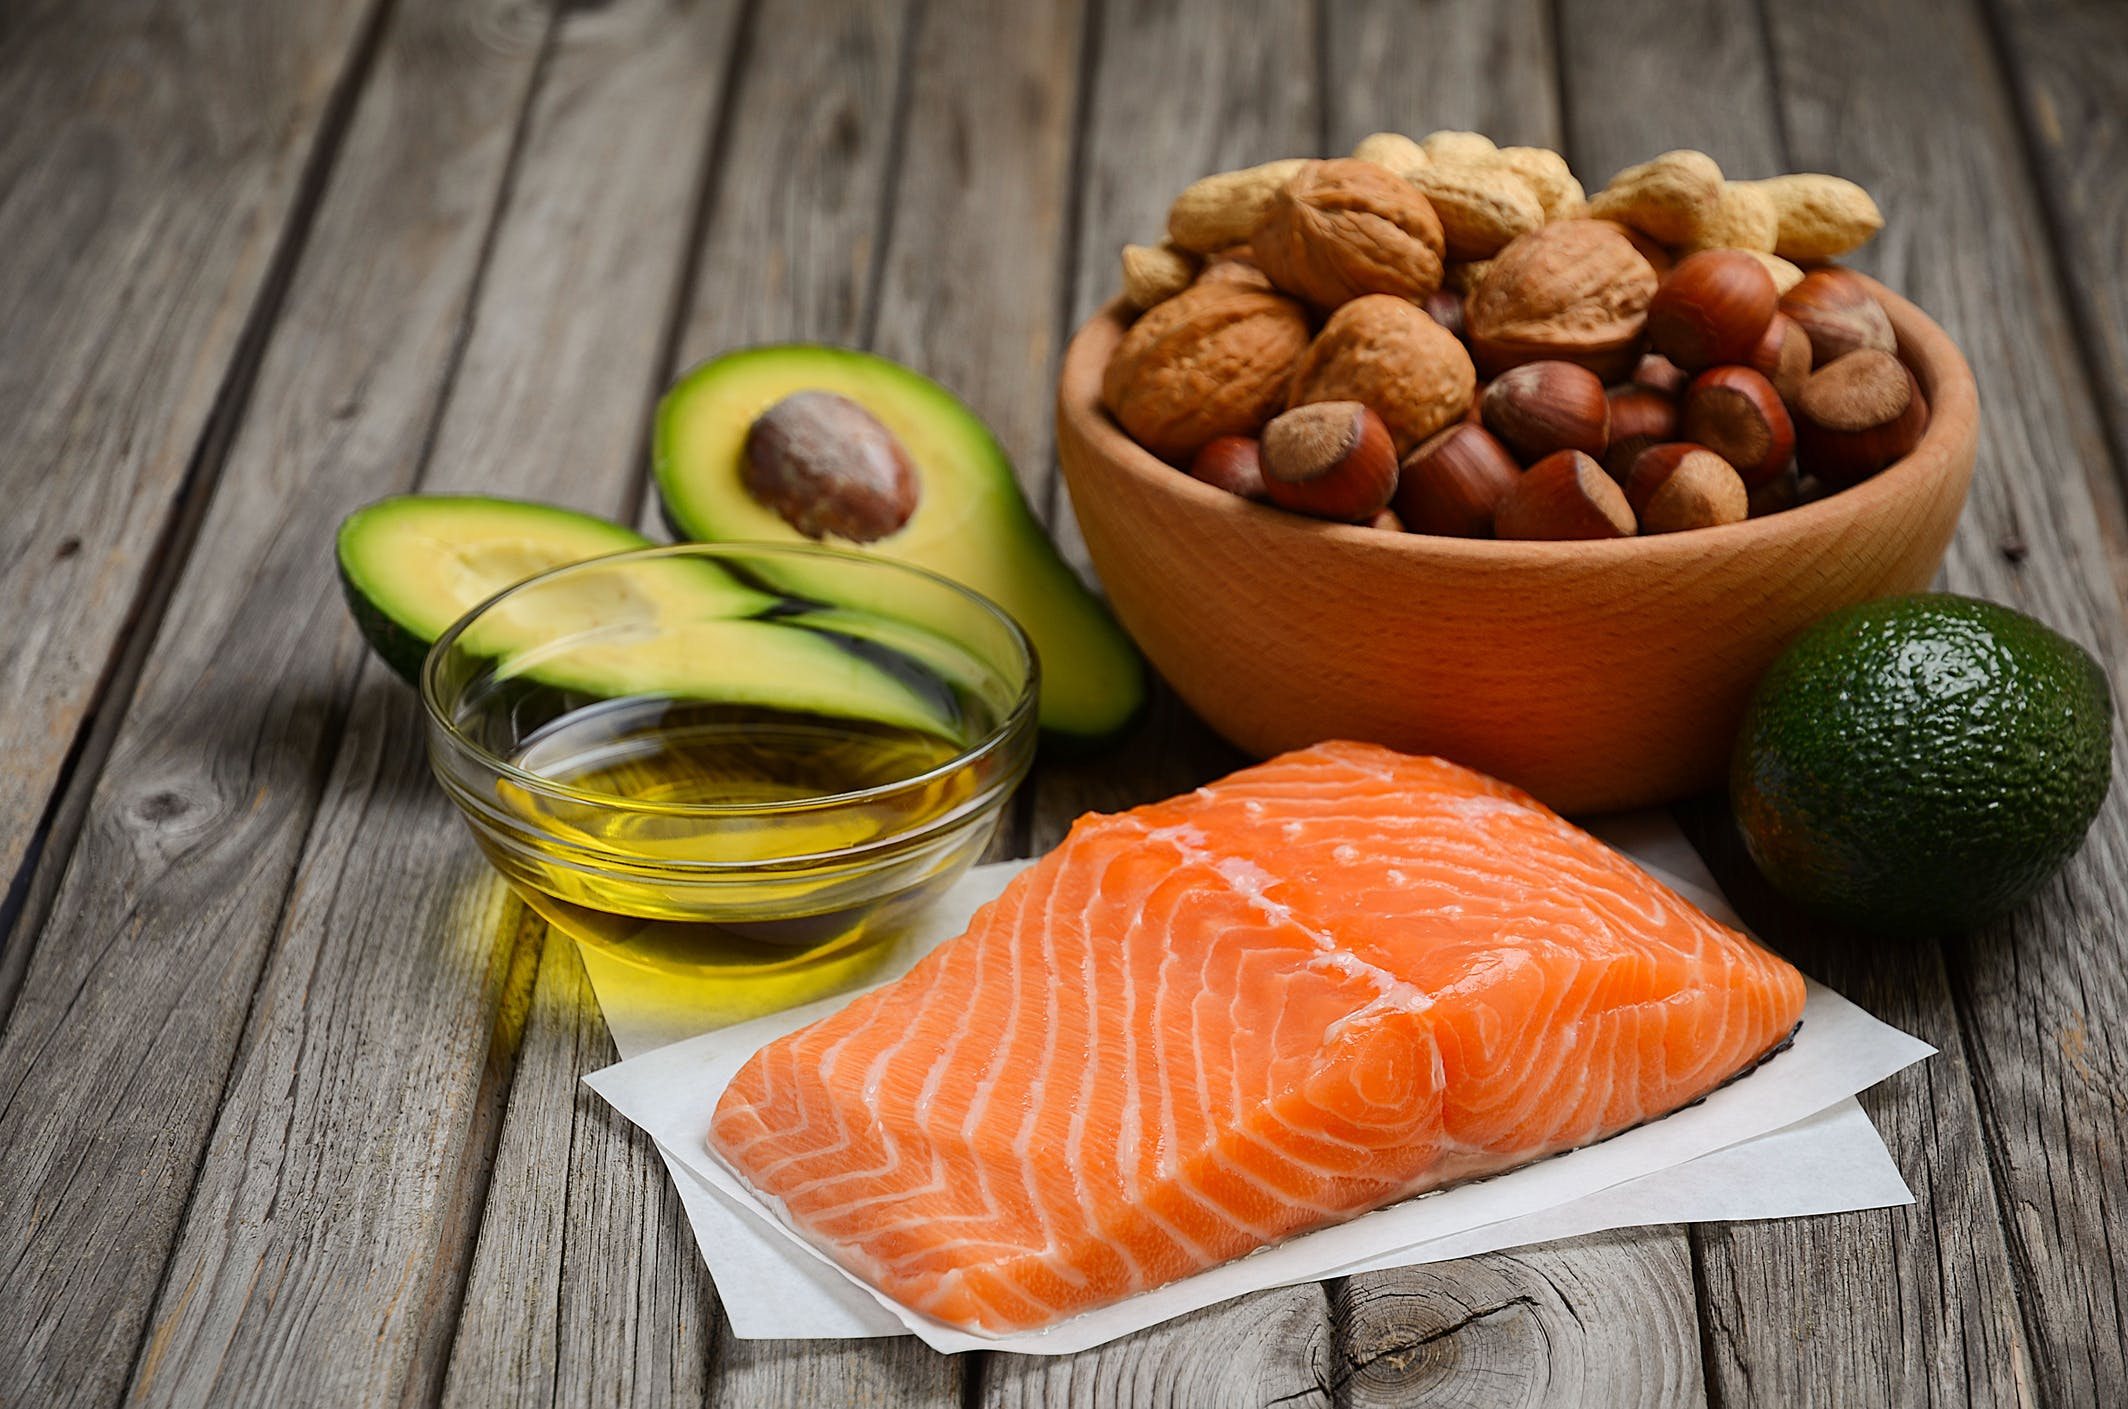 ADA 2018: Very low-carbohydrate diets for diabetes